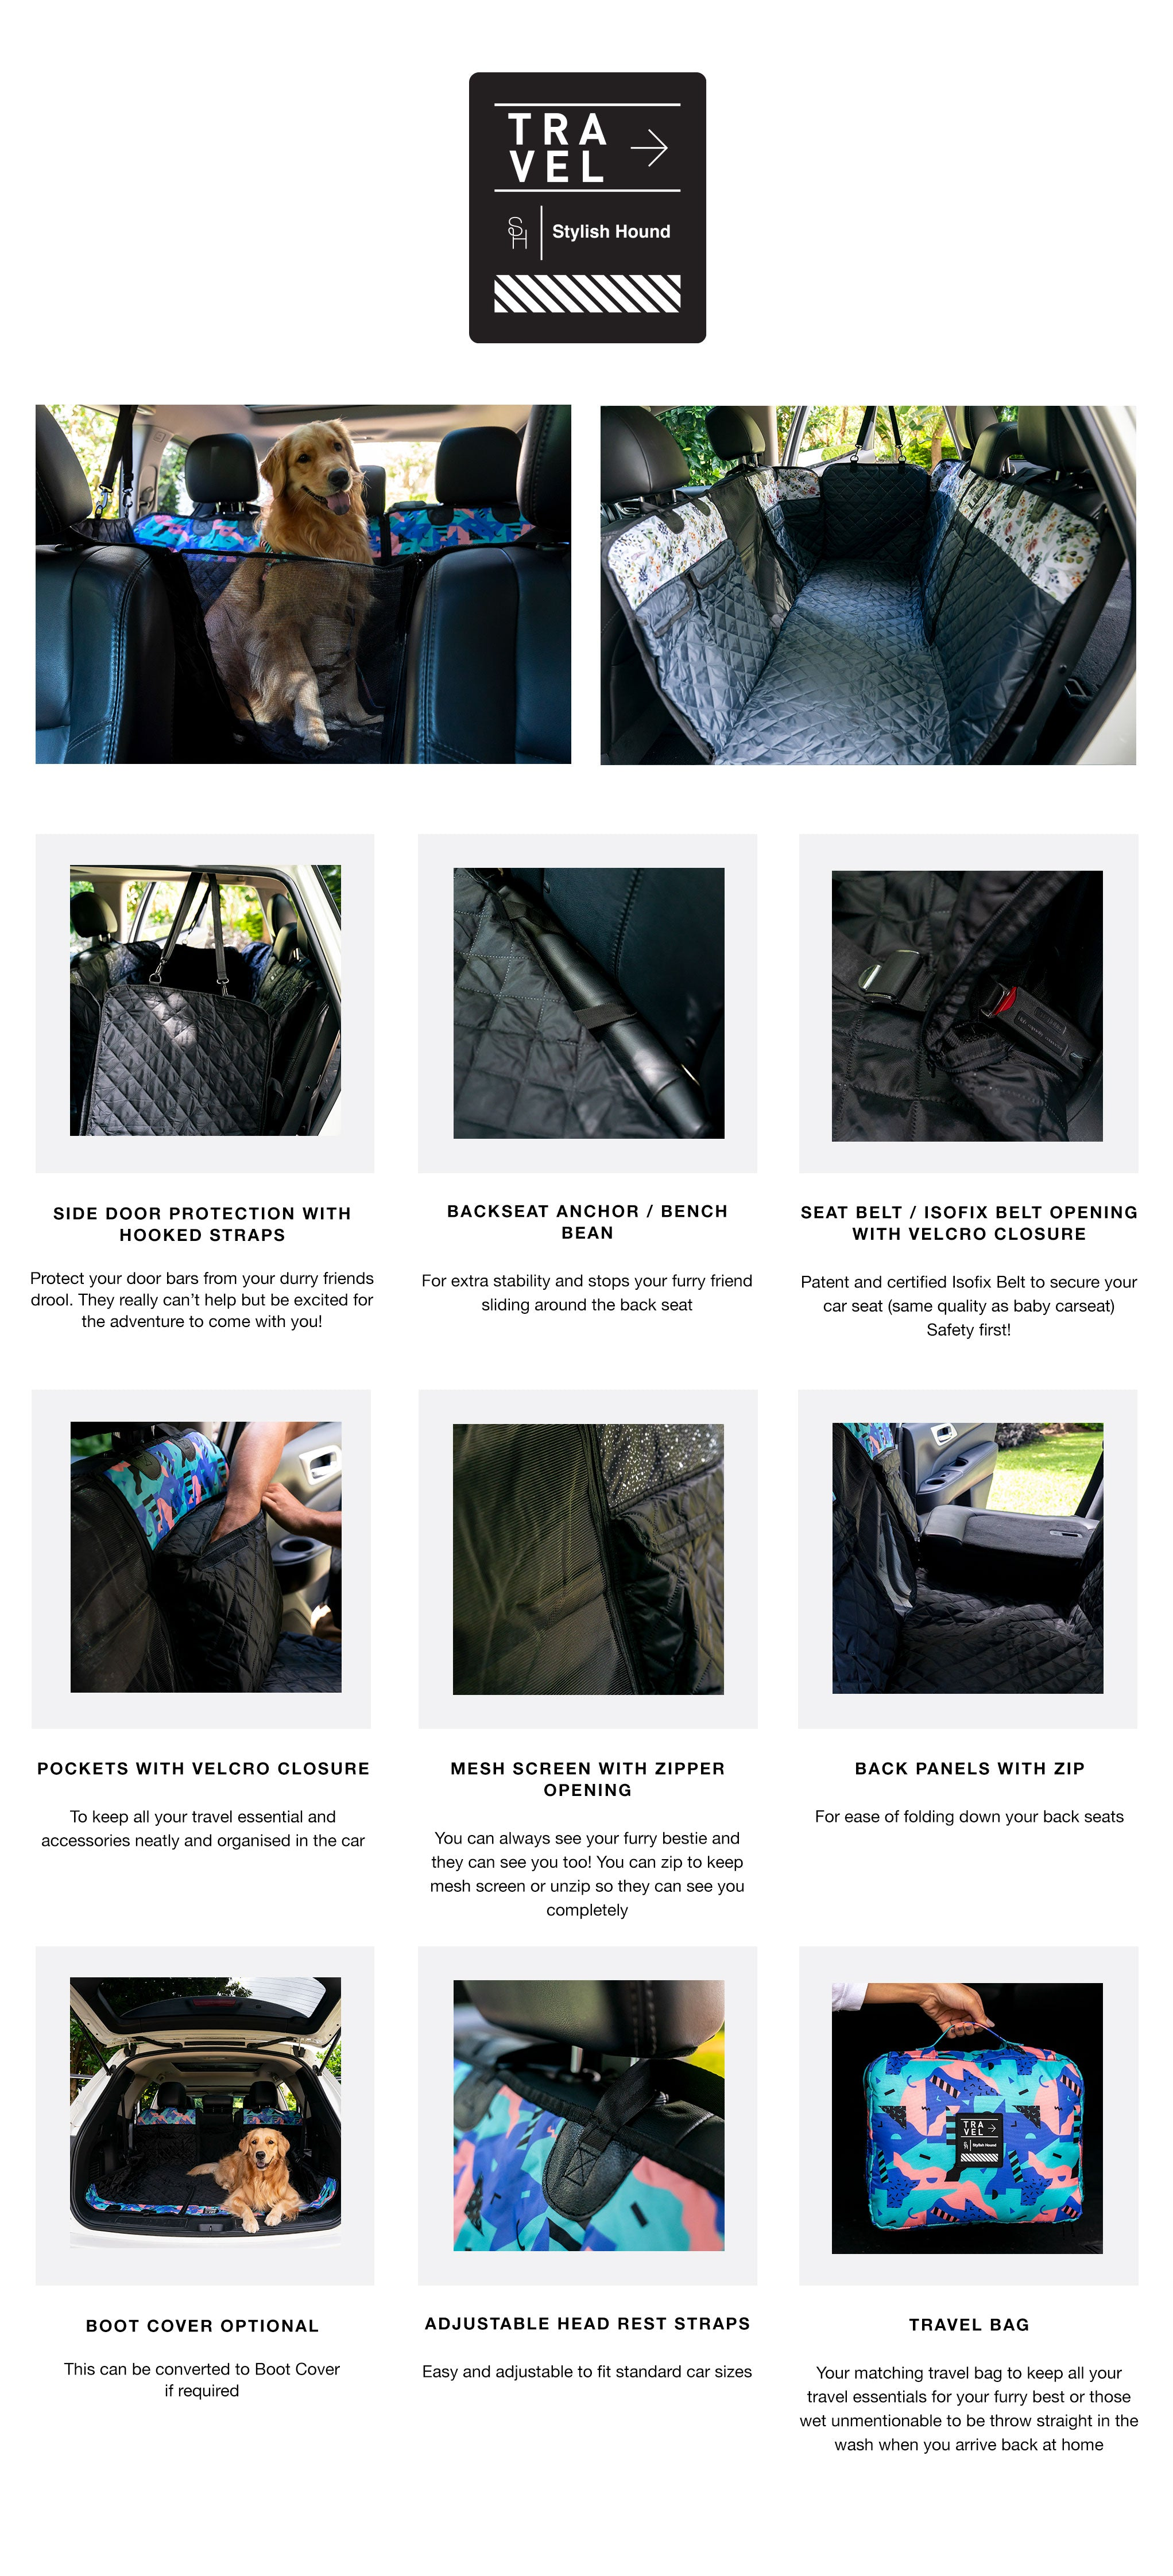 Evergreen Car Seat Cover w Travel Bag